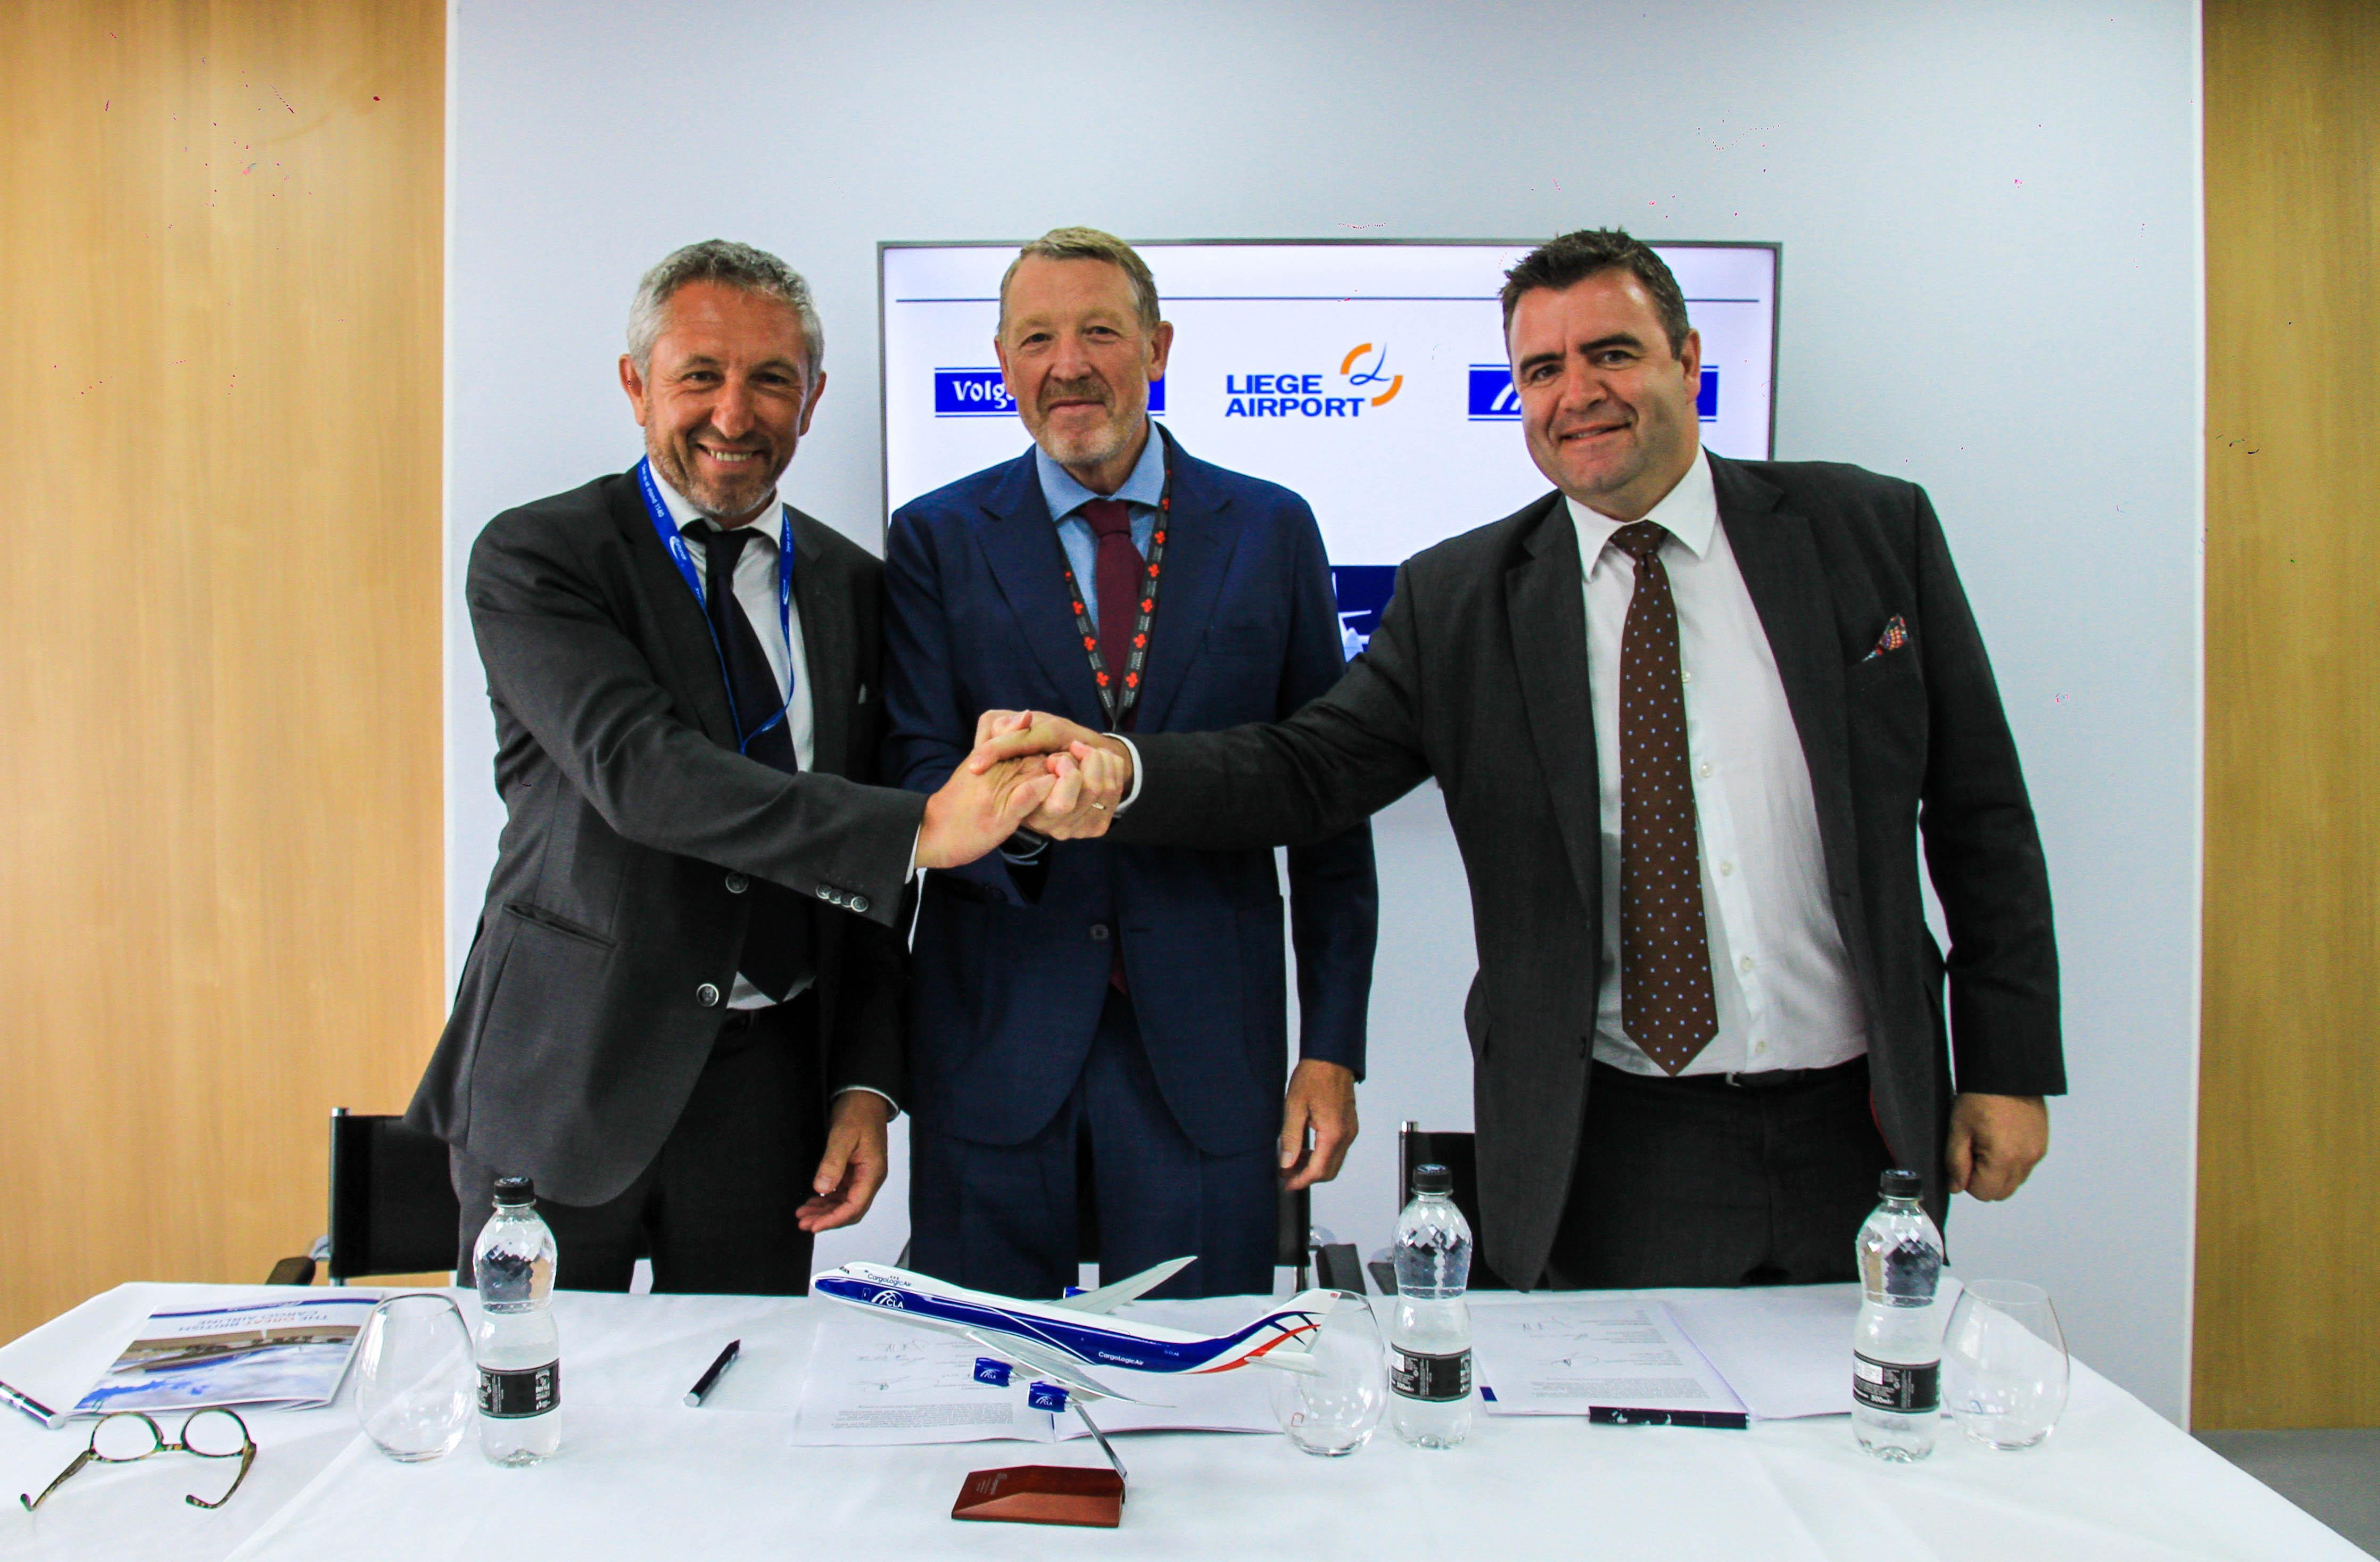 Signing the MoU are (left to right) Luc Partoune, chief executive officer of Liege Airport, Alexey Isaykin, president of Volga-Dnepr Group, and David Kerr, ceo of CargoLogicAir.